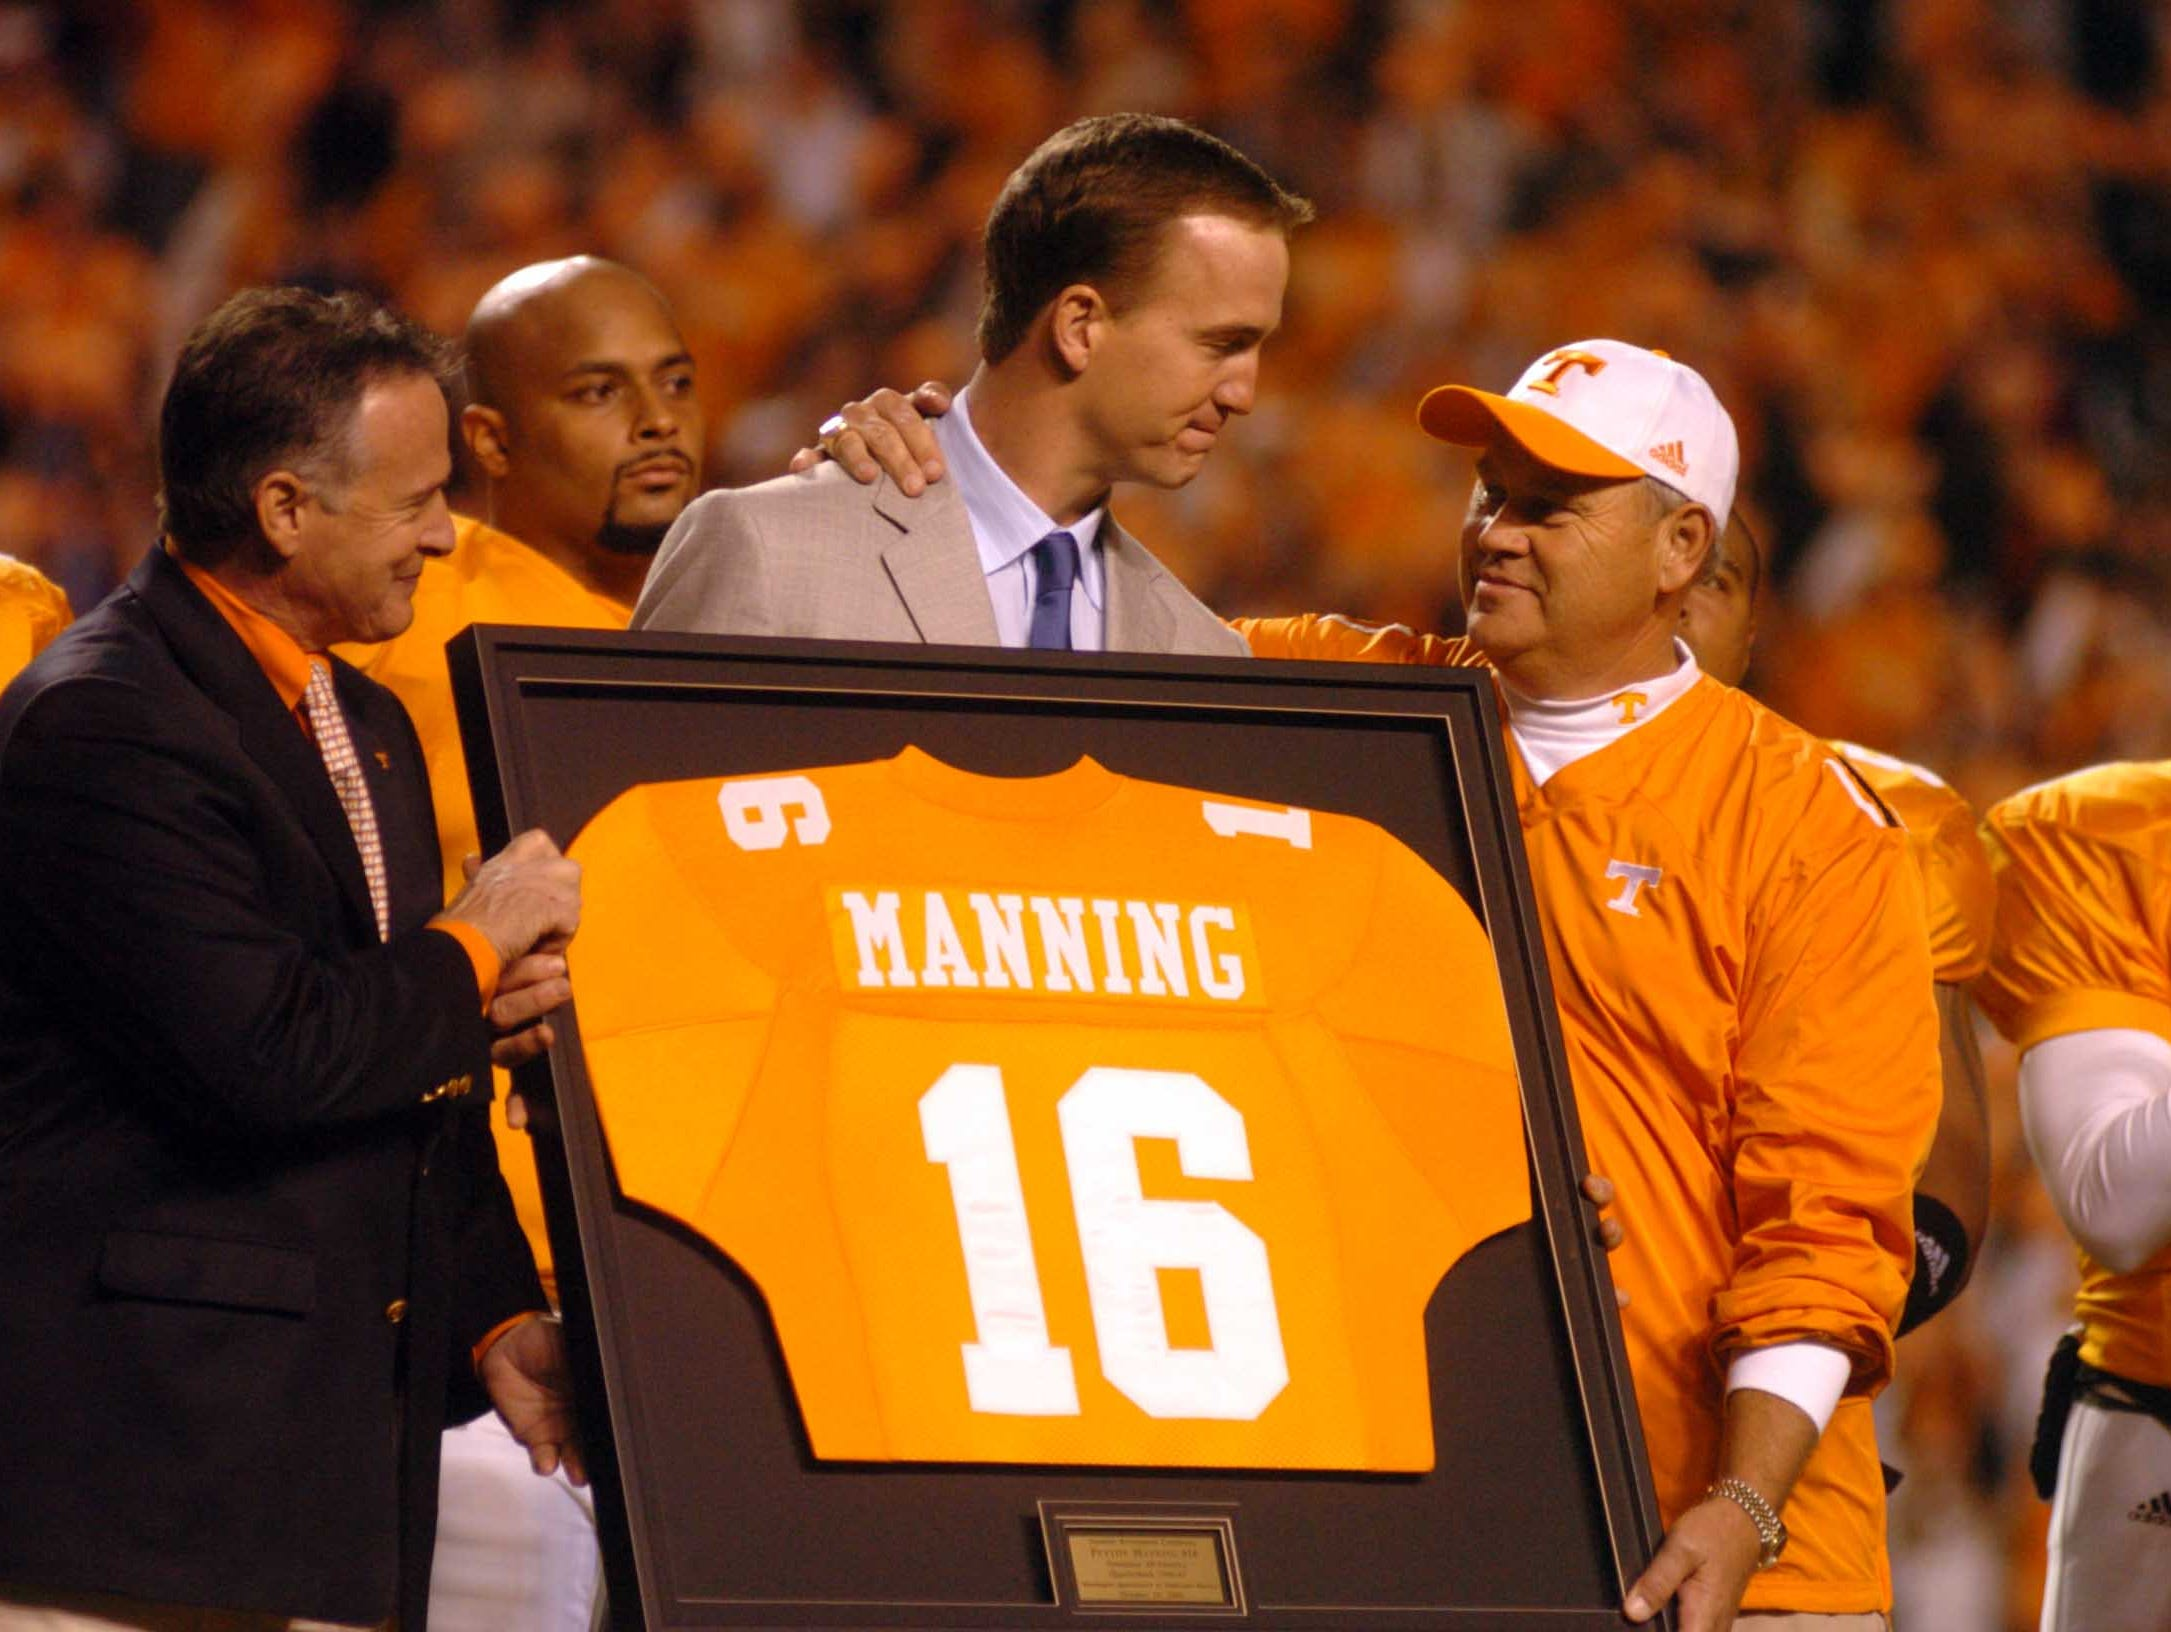 Former Tennessee quarterback Peyton Manning, center, is congratulated by coach Phillip Fulmer as his jersey is retired Saturday, Oct. 29, 2005, at Neyland Stadium. UT President John Petersen is at left.